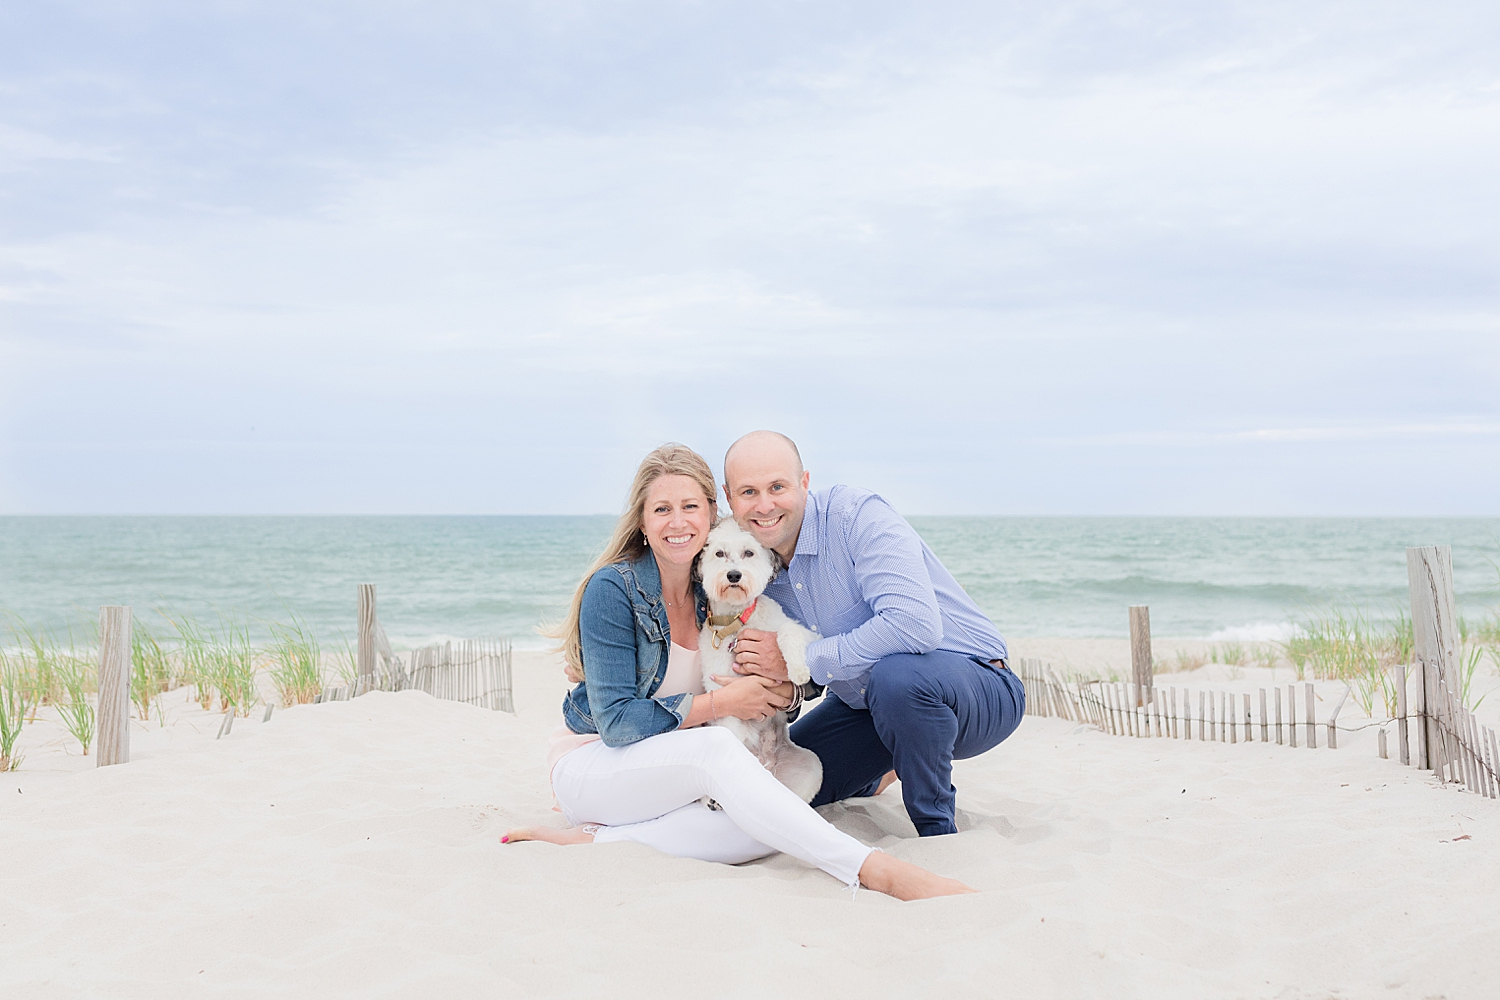 engagement photo with their dog on the beach in seaside park NJ